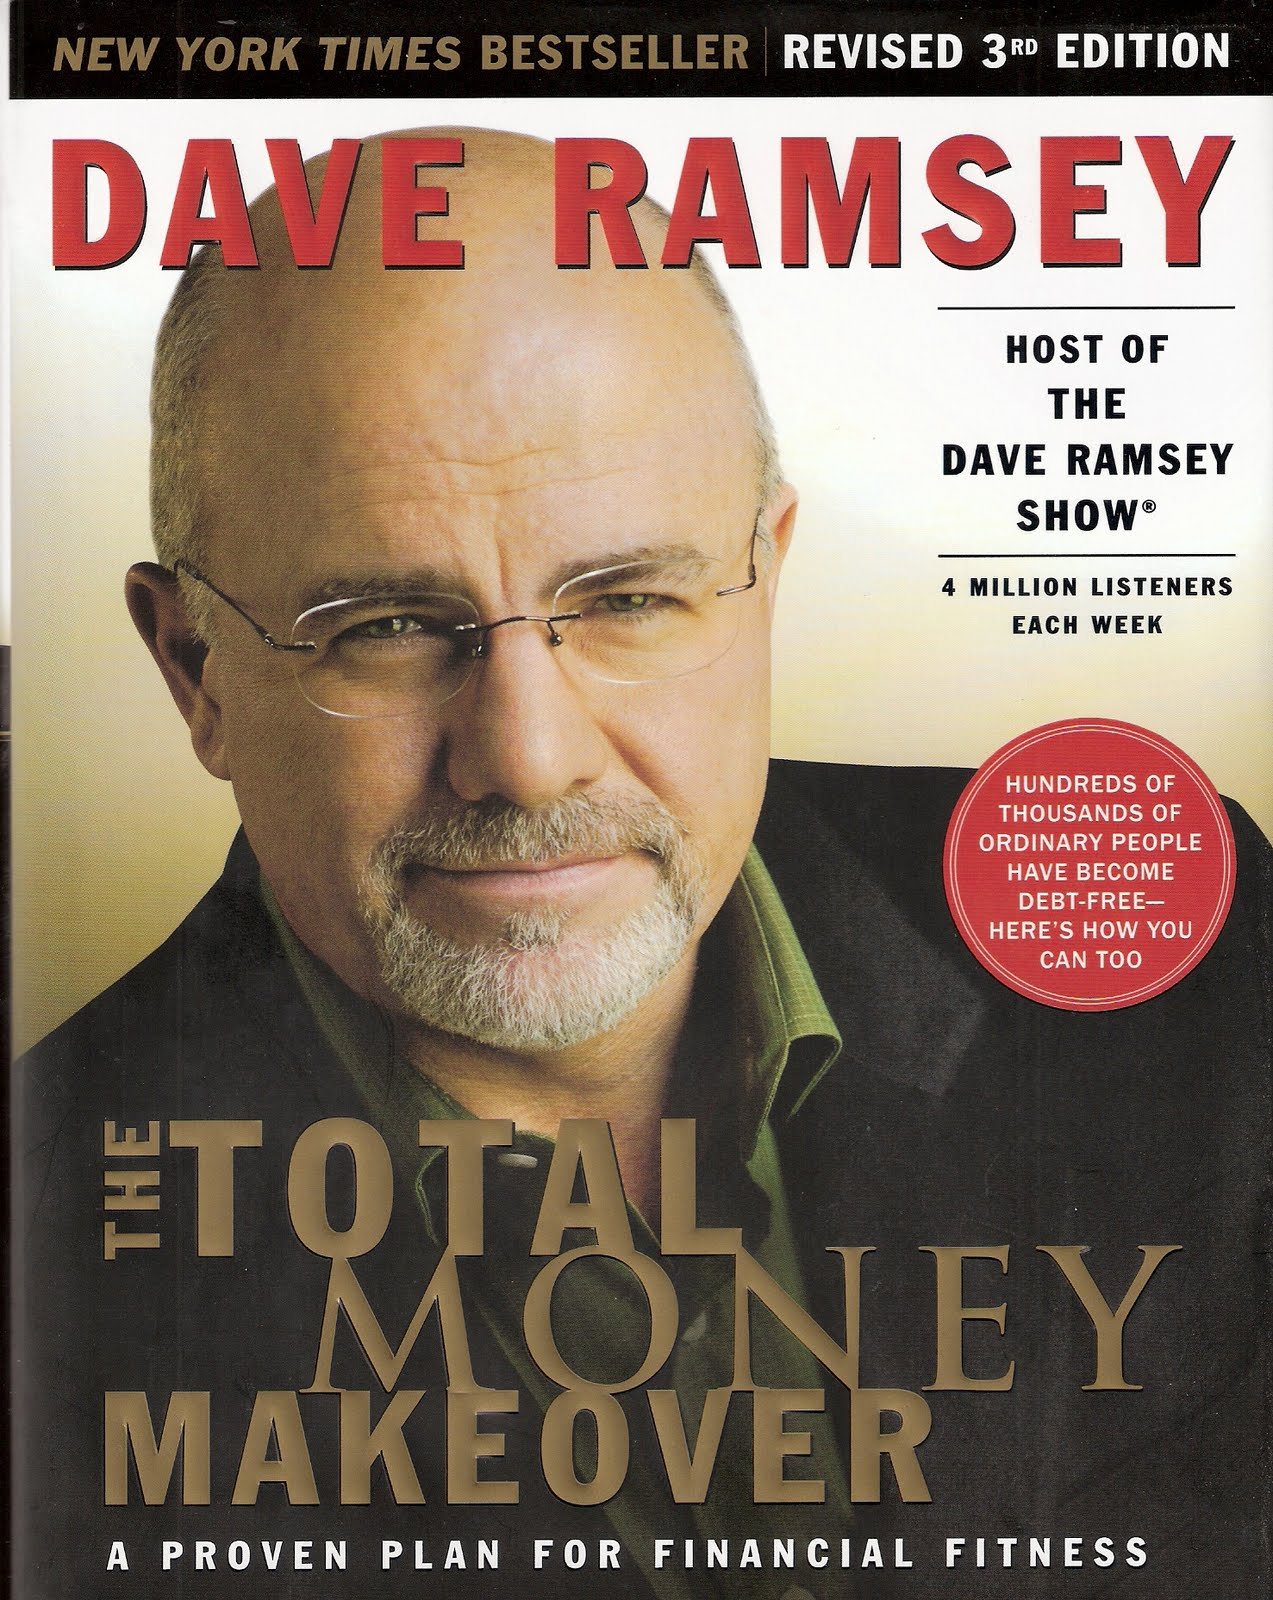 The Journey Of Parenthood Spending Smart Dave Ramsey